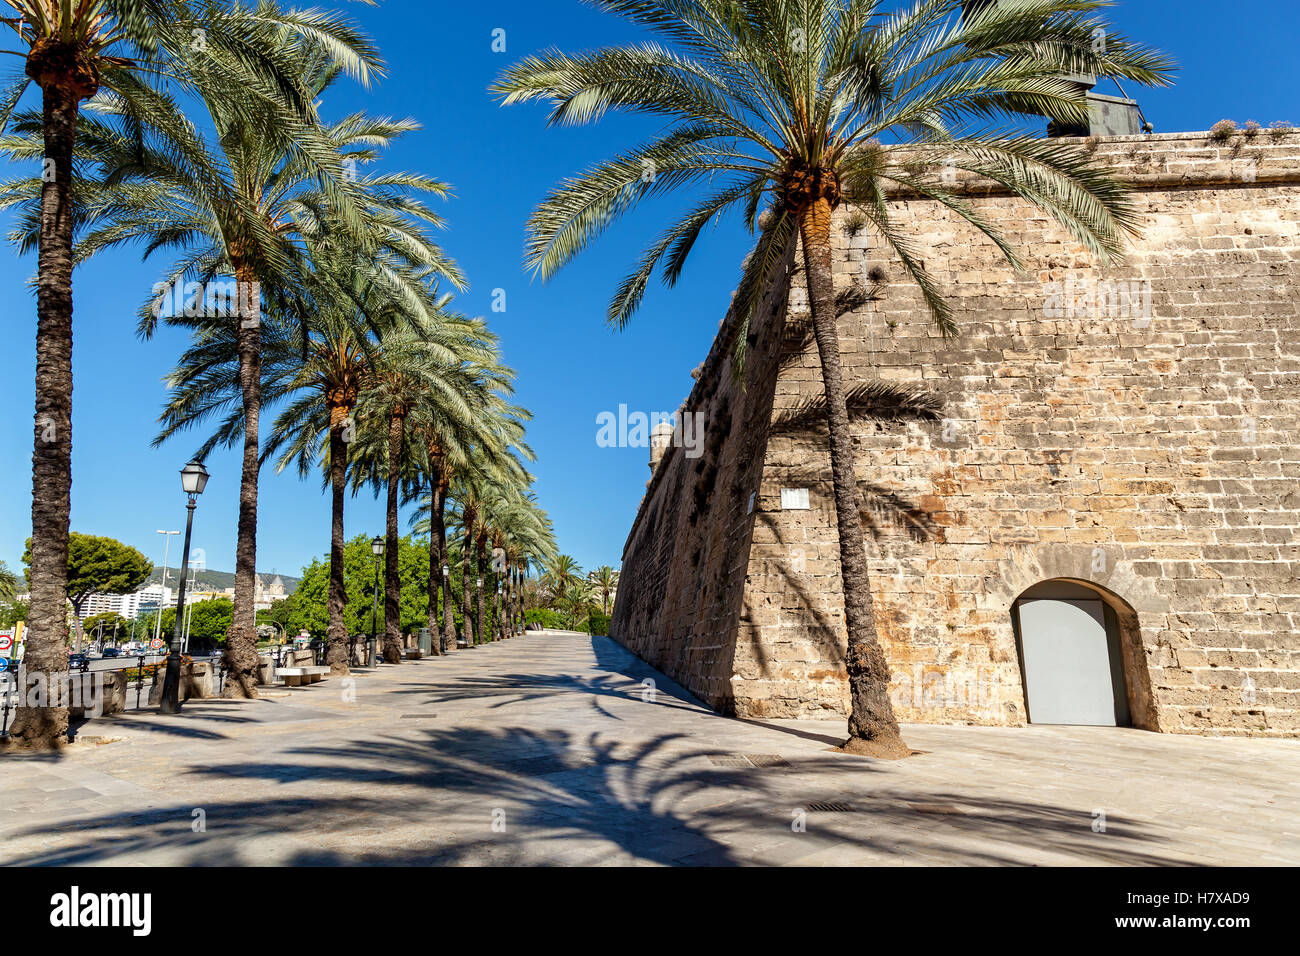 Walking alley with palms near an ancient castle,Palm alley - Stock Image